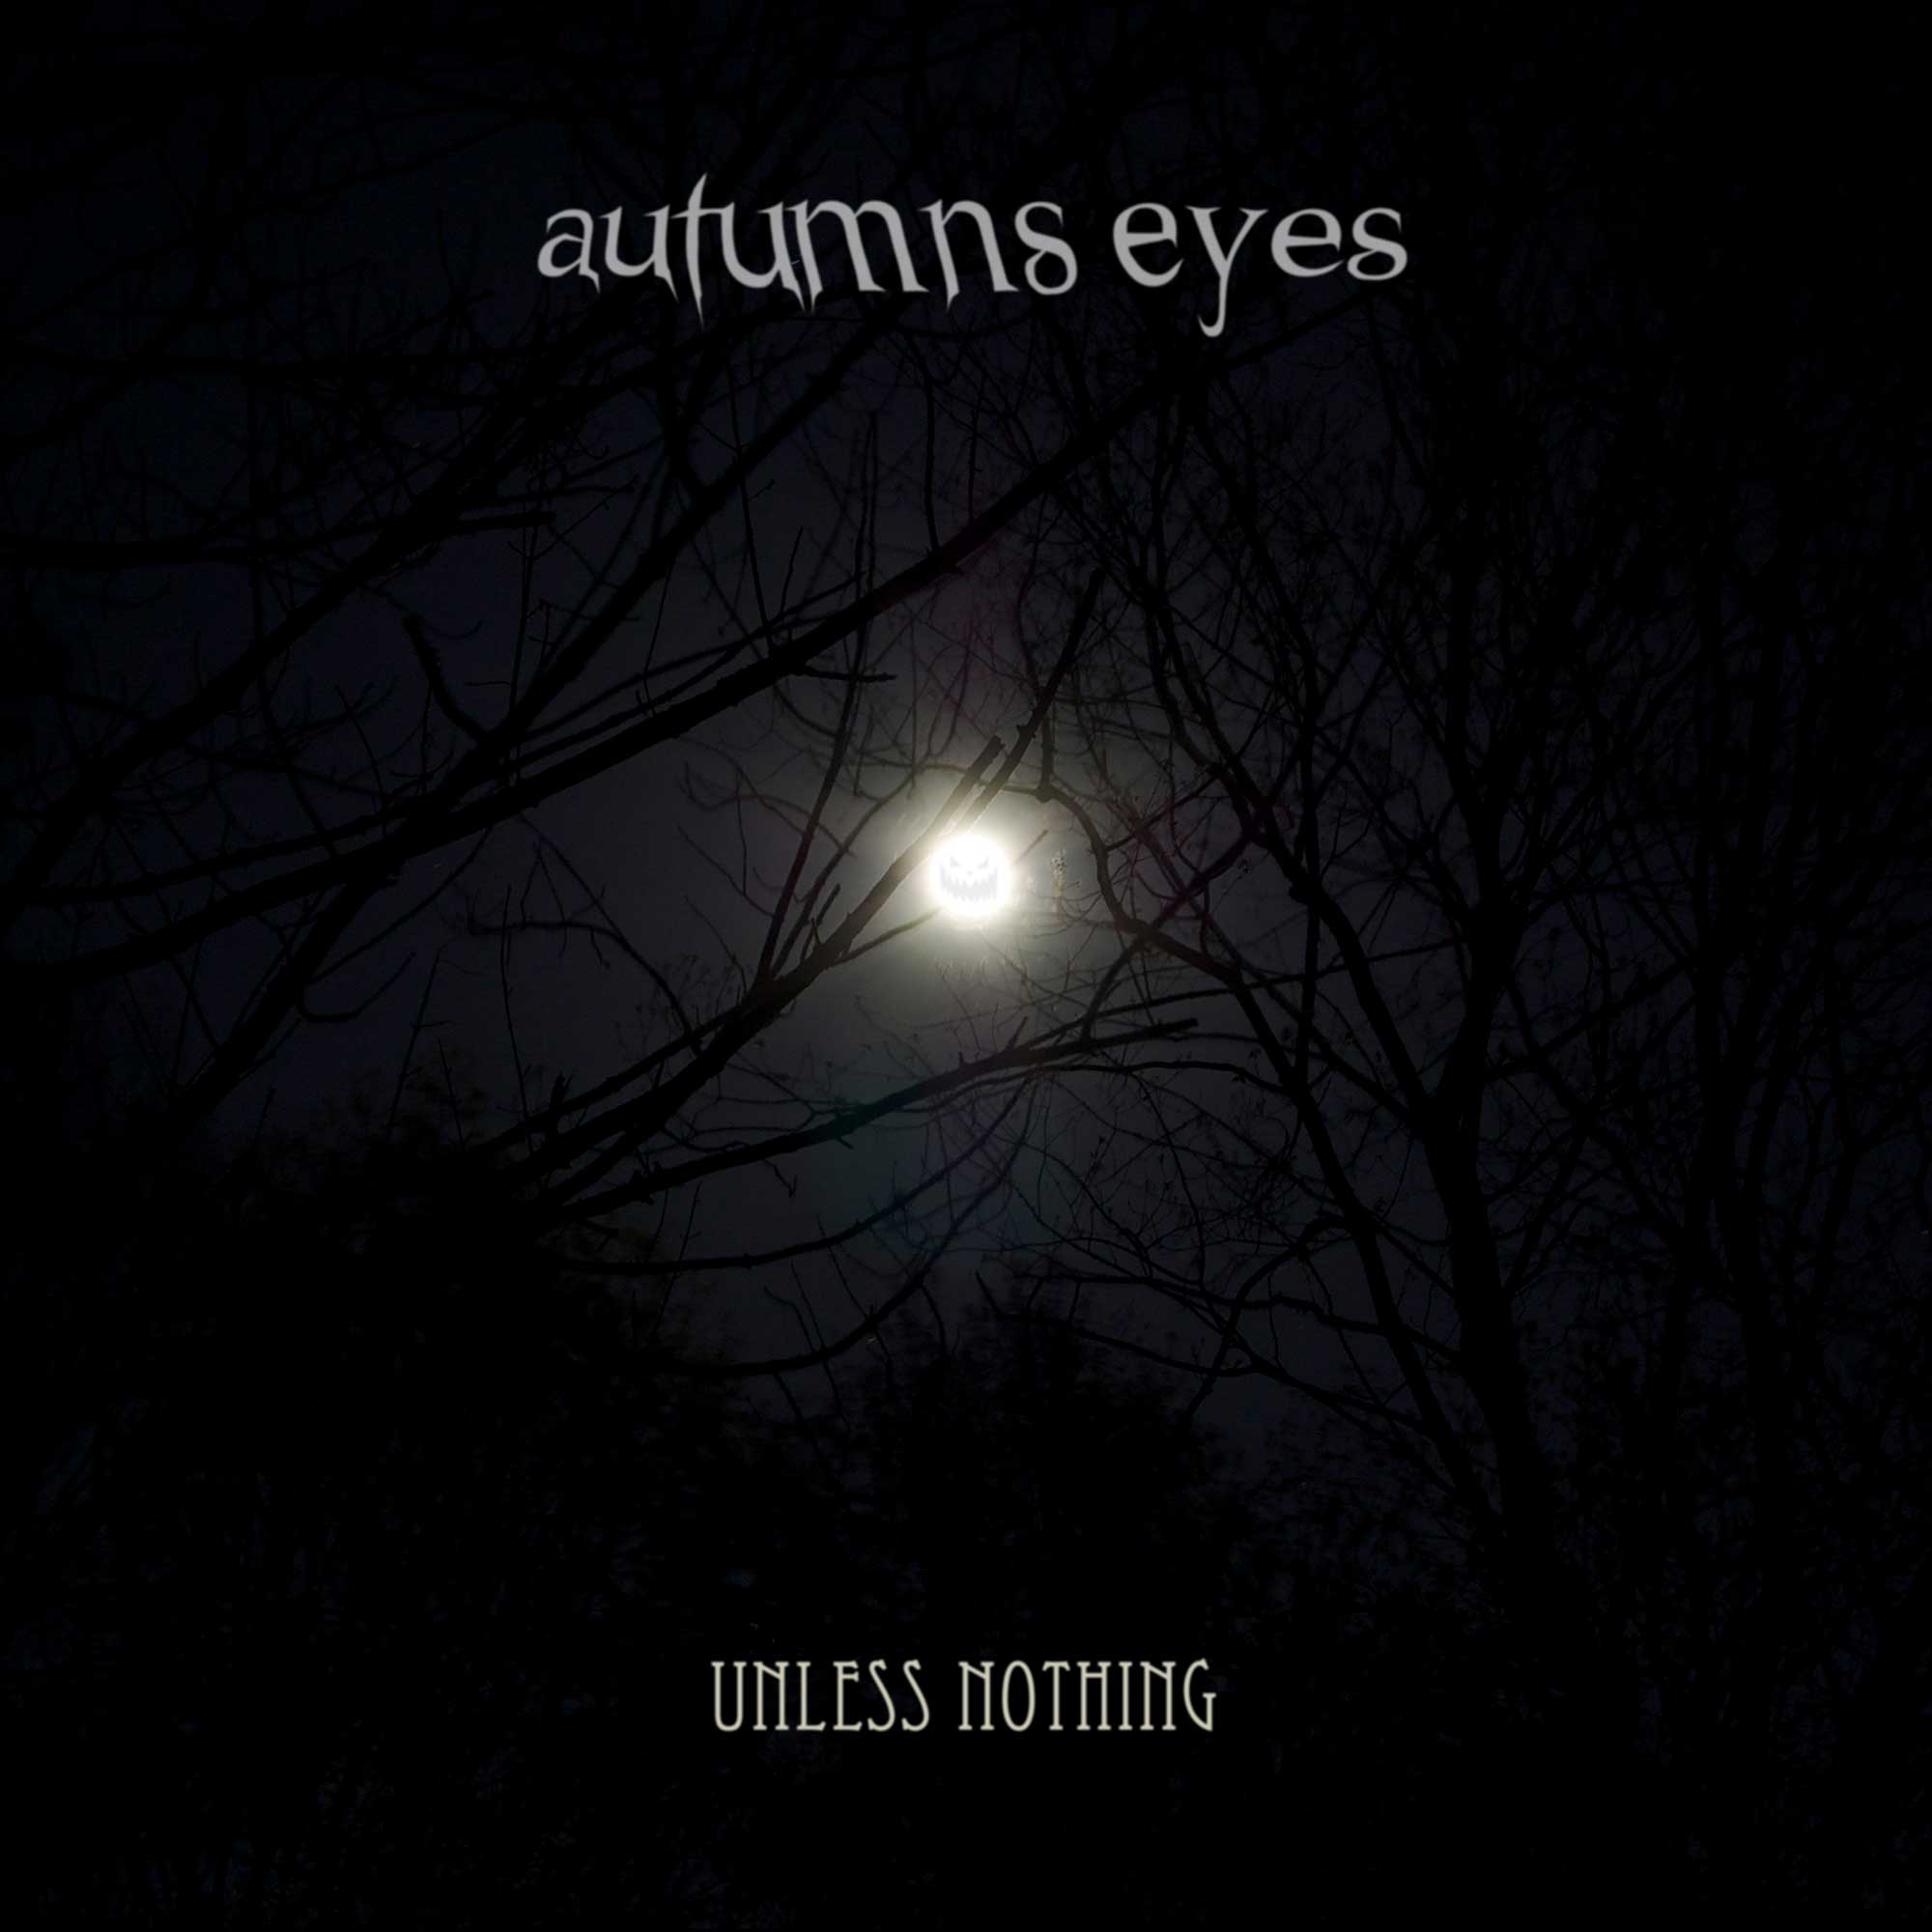 Autumns Eyes - Unless Nothing